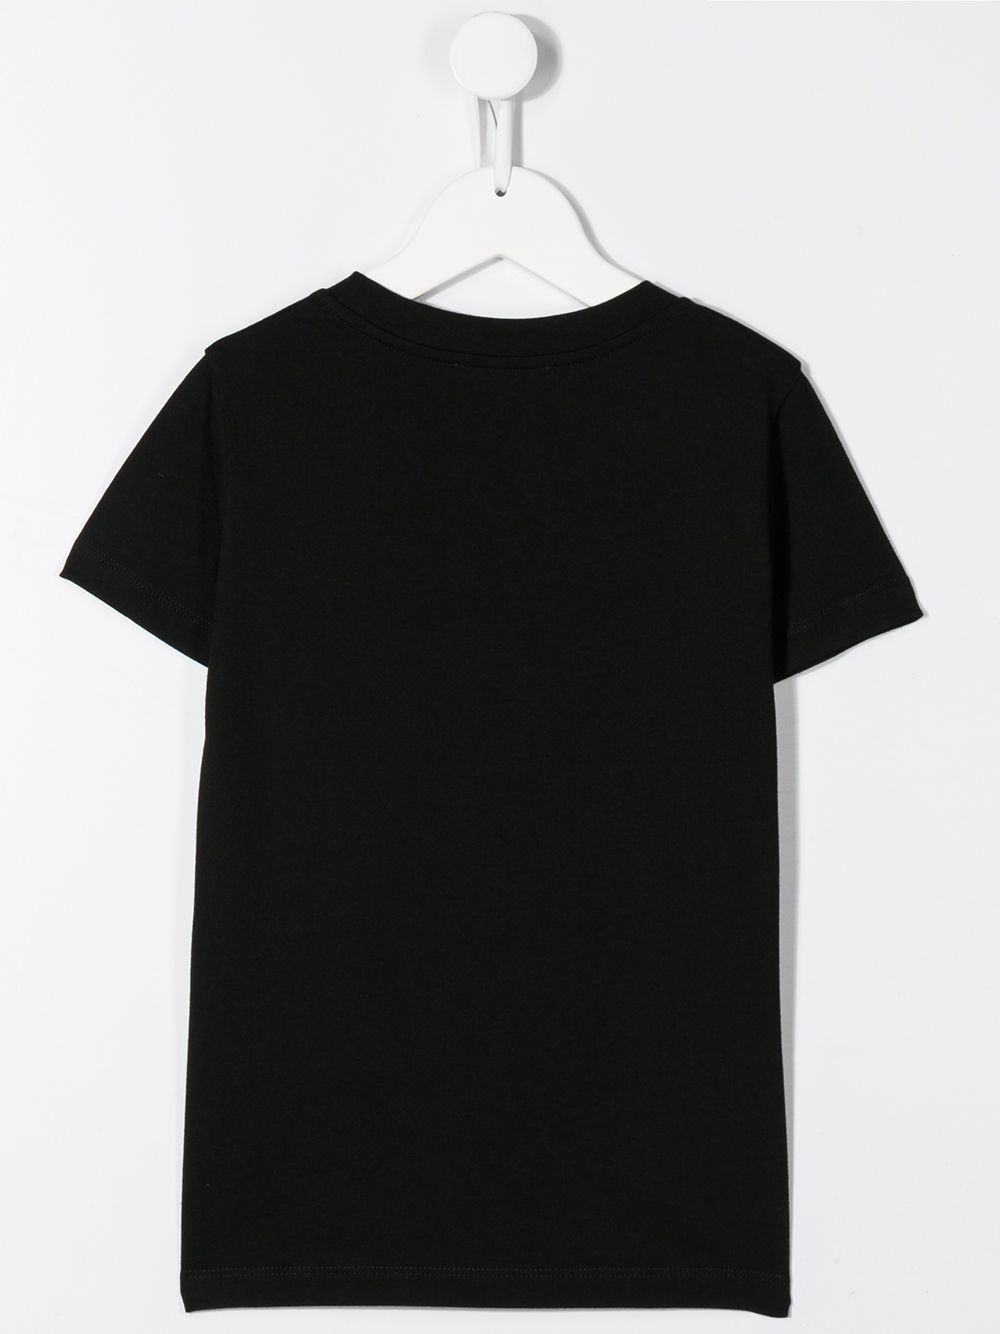 BALMAIN KIDS flock logo print t-shirt black